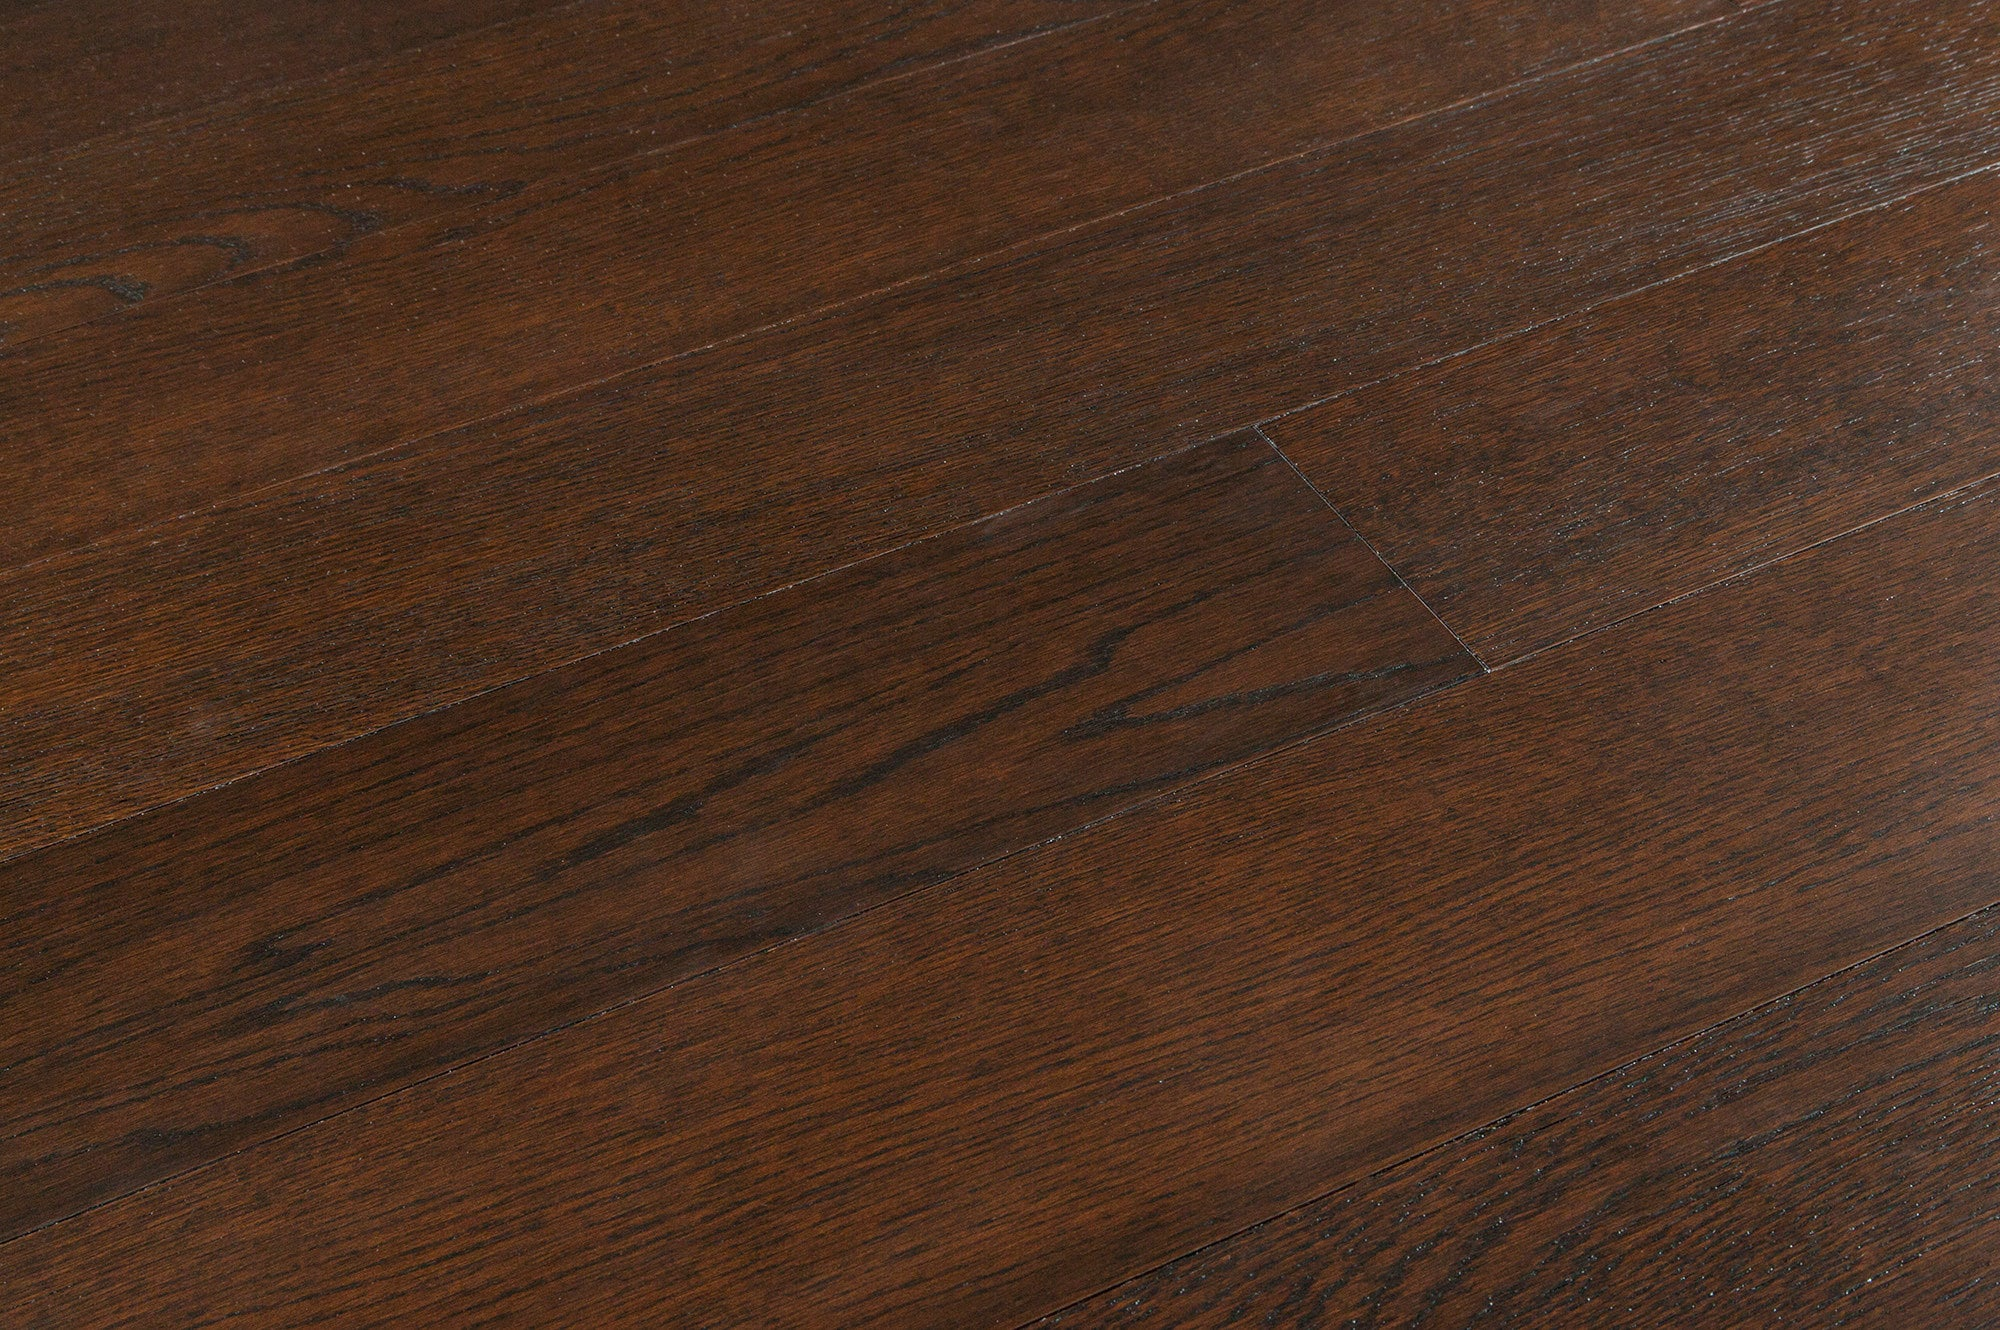 Clearance Hardwood Flooring lamton laminate 12mm narrow board collection underpad attached Jasper Engineered Hardwood Teclic Desert Wire Brushed Collection